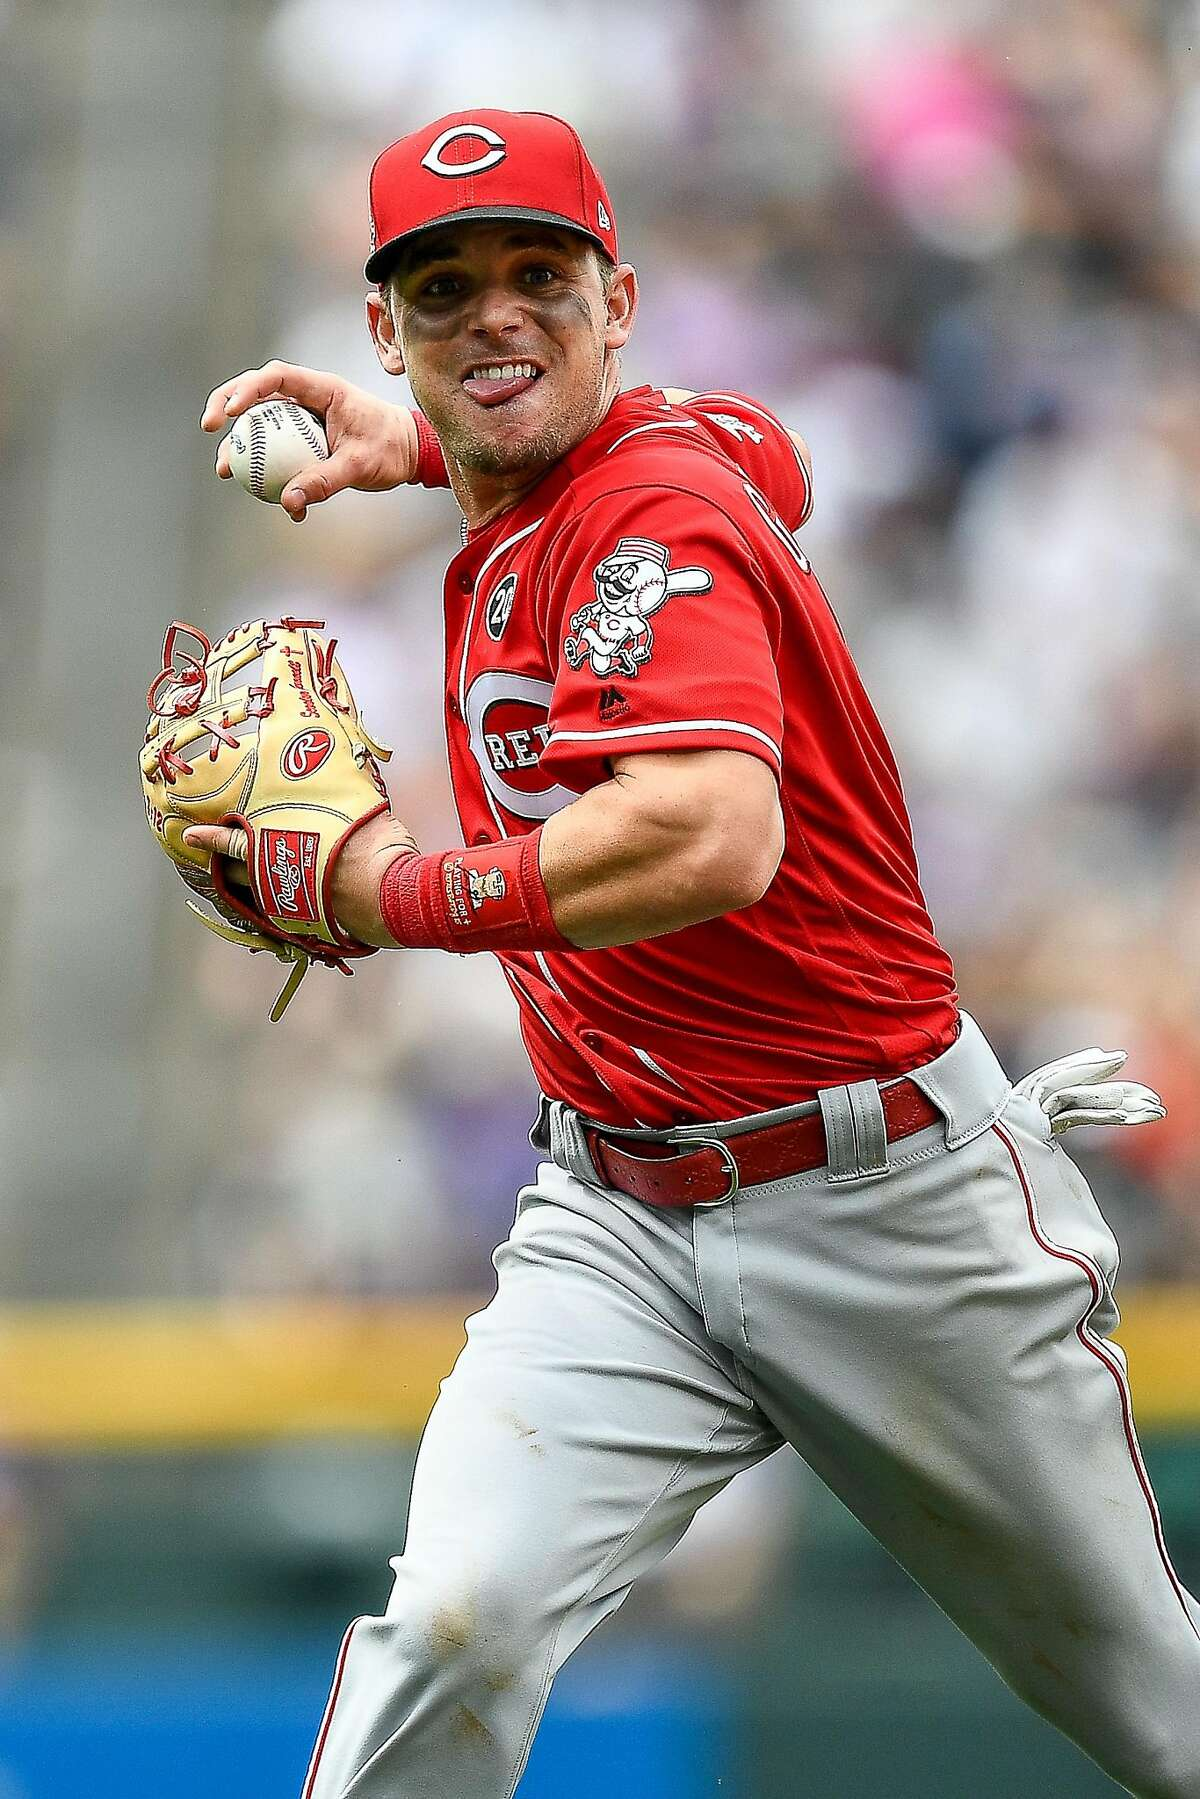 DENVER, CO - JULY 14: Scooter Gennett #3 of the Cincinnati Reds sets to throw after fielding a ground ball against the Colorado Rockies at Coors Field on July 14, 2019 in Denver, Colorado. ~~